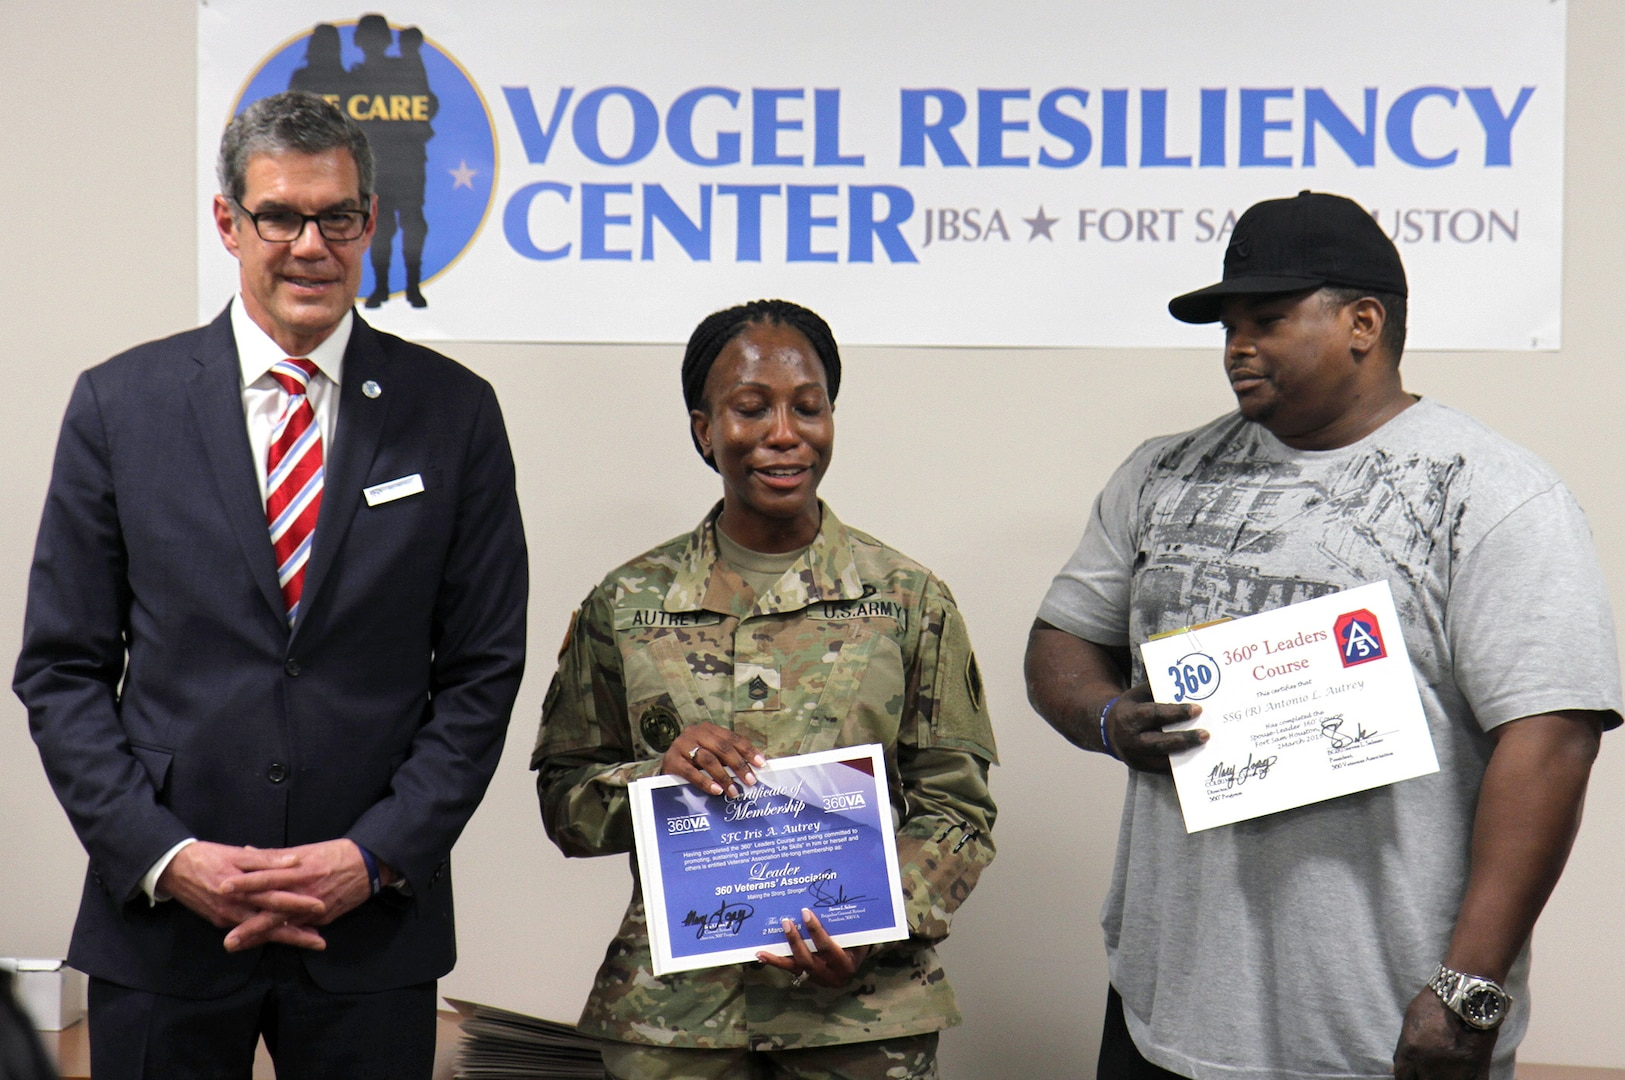 Sgt. 1st Class Iris Autrey (middle), a combat medic specialist with Company A, 187th Medical Battalion, gathers her thoughts before addressing her fellow graduating class members after receiving her certificate March 2 from the Soldier 360 Leadership Resiliency Course at the Vogel Resiliency Center at Joint Base San Antonio-Fort Sam Houston. Her husband, Antonio Autrey (right), also received a certificate as a participant in the course.